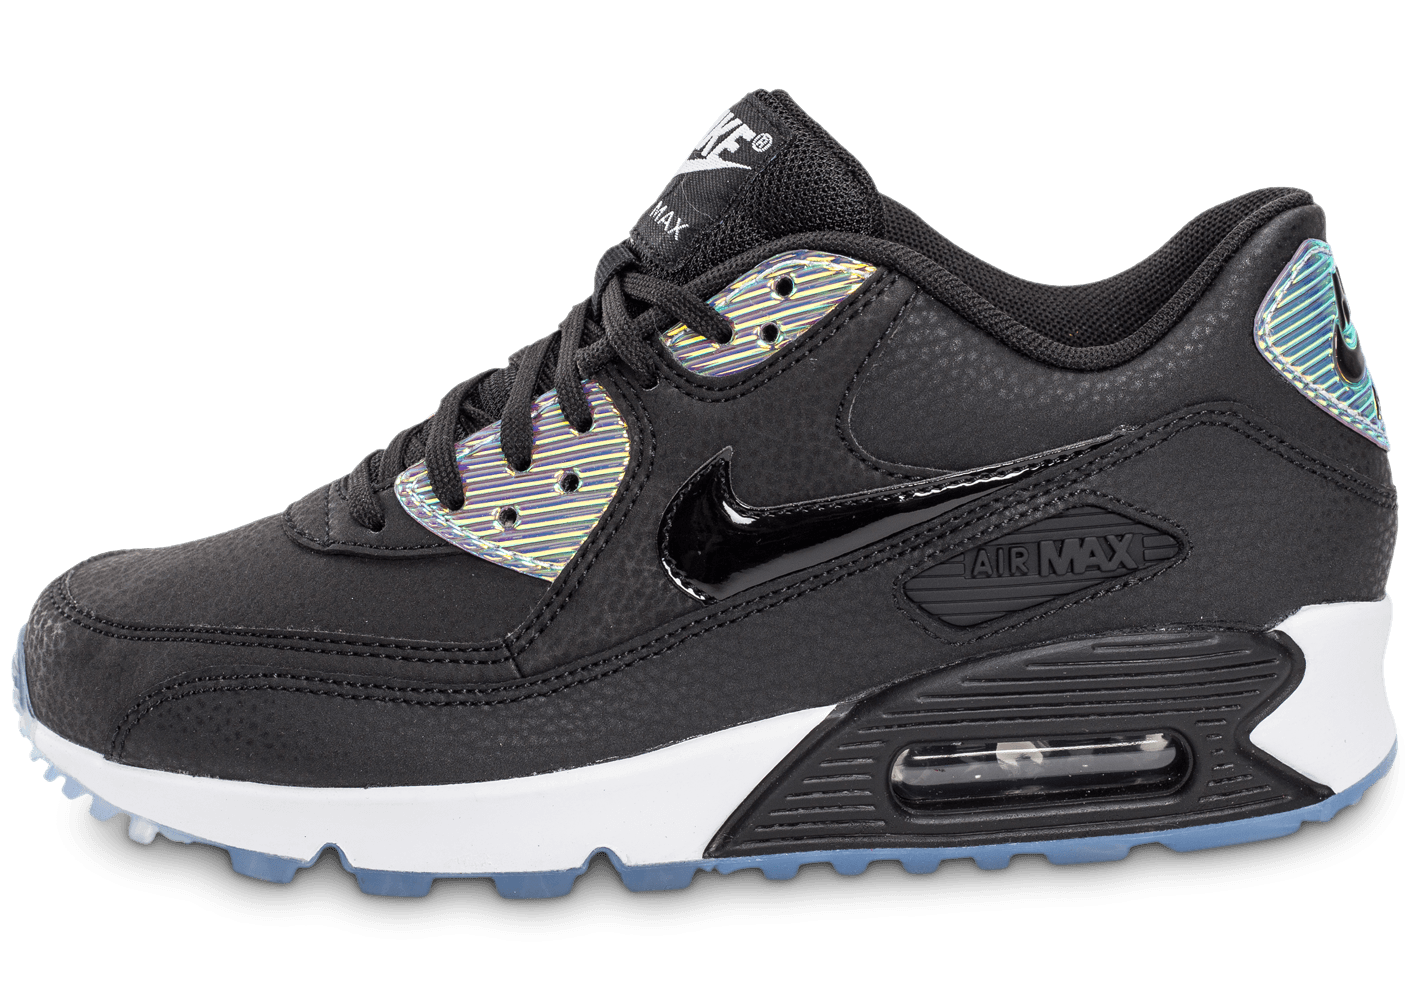 chaussure air max 90. Black Bedroom Furniture Sets. Home Design Ideas